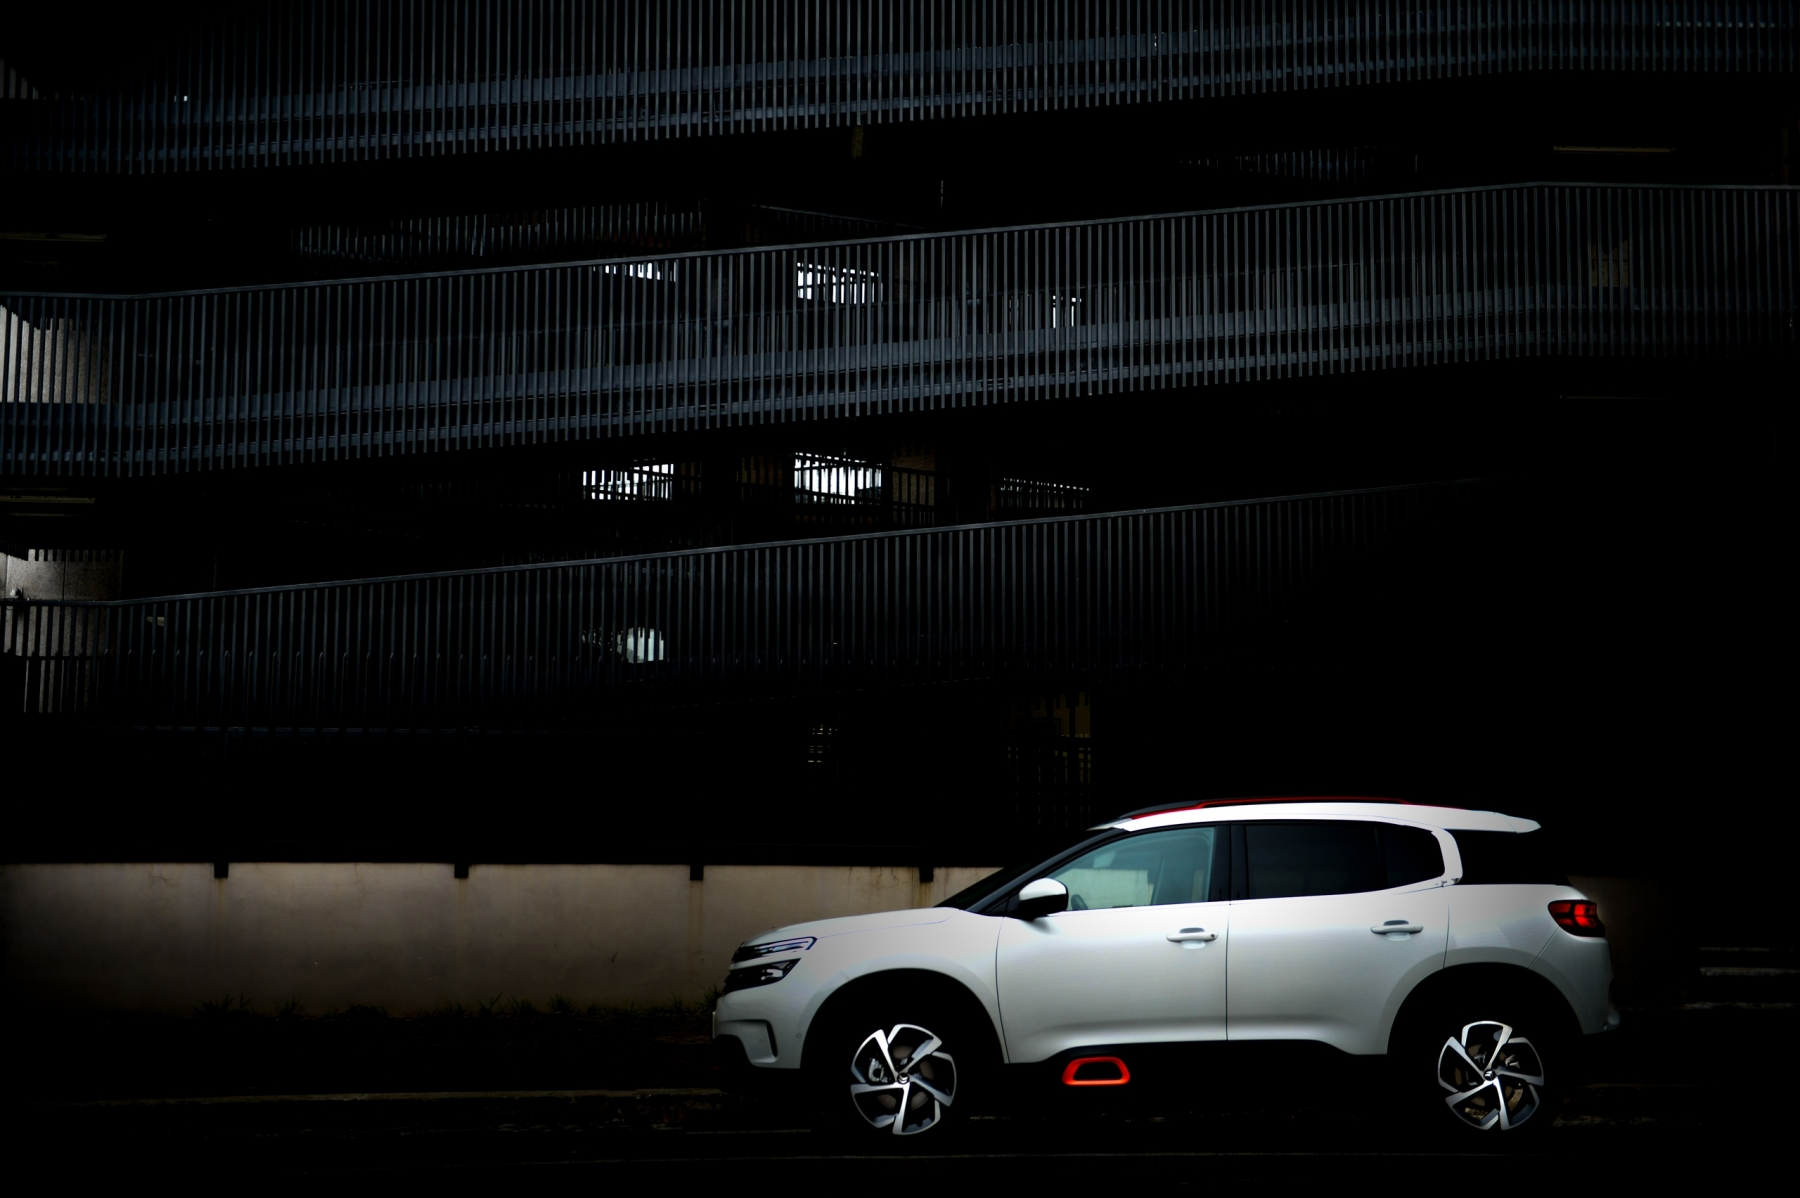 LR5_EDIT-EXPORT_CITROEN-C5-AIRCROSS_overall-64